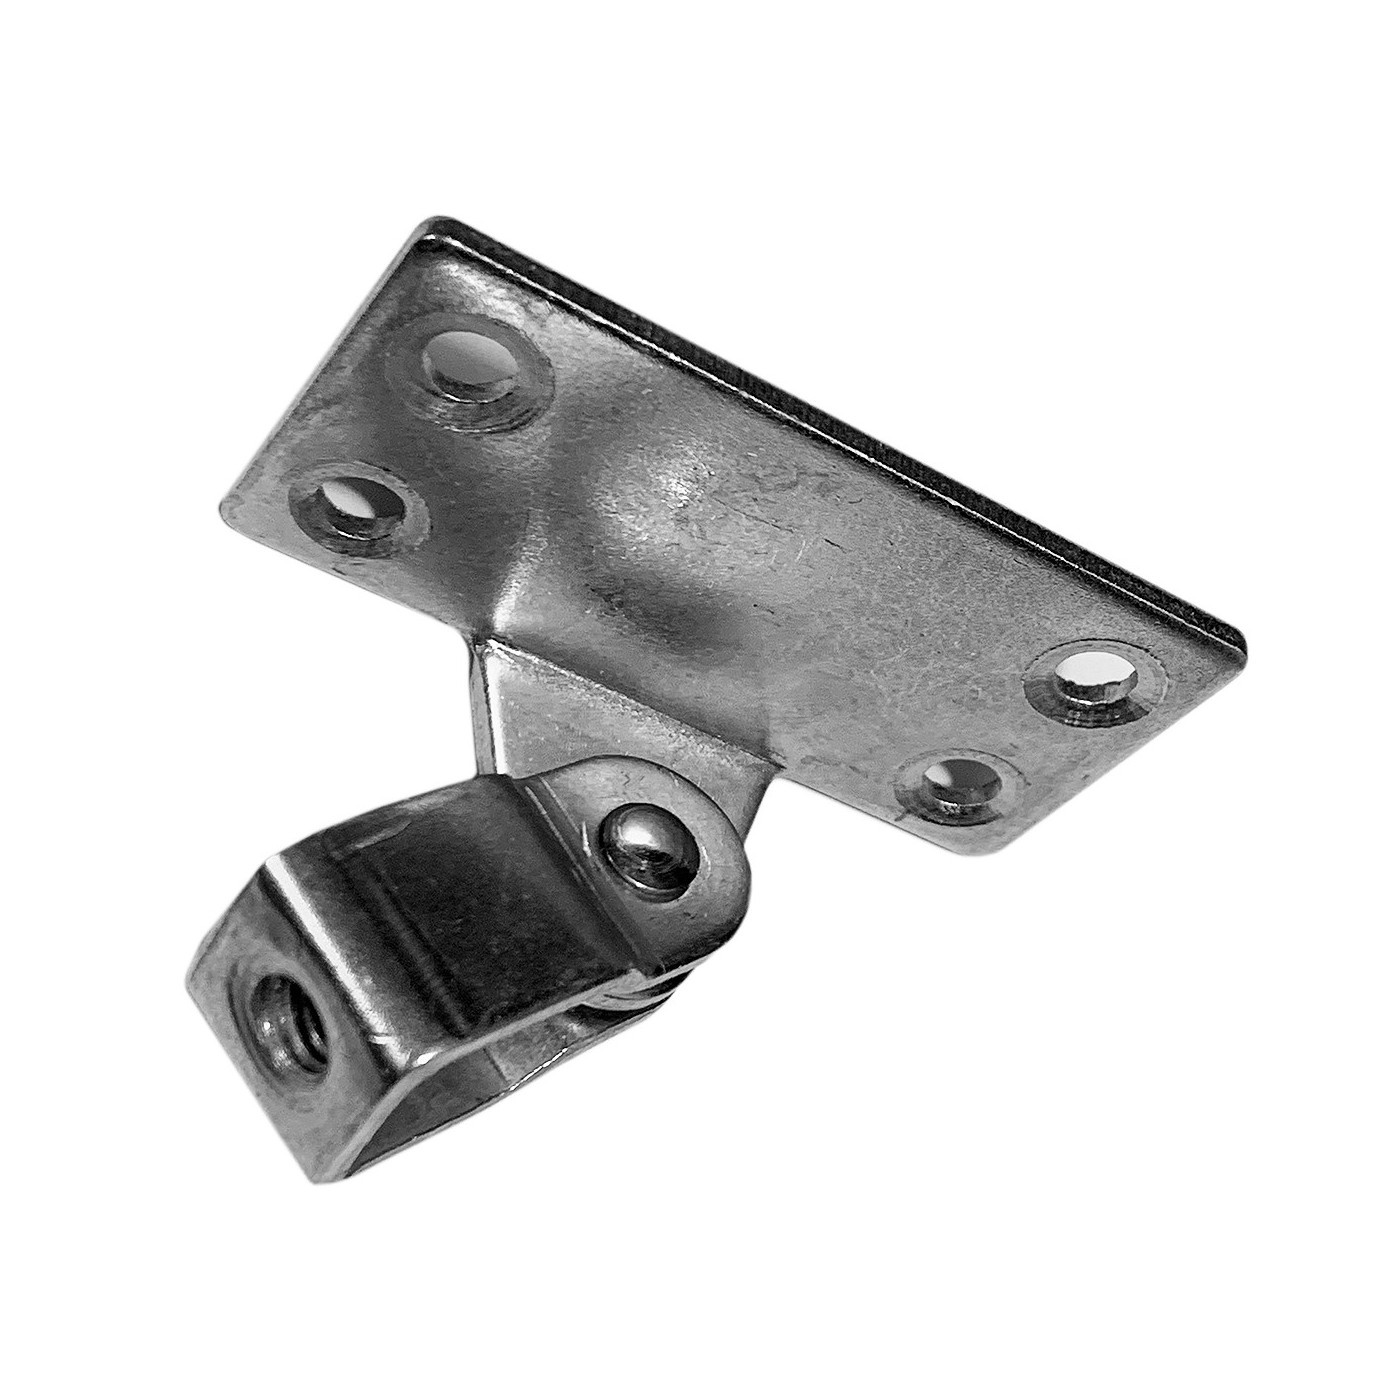 Mounting bracket for 350N/700N gas spring (angle part)